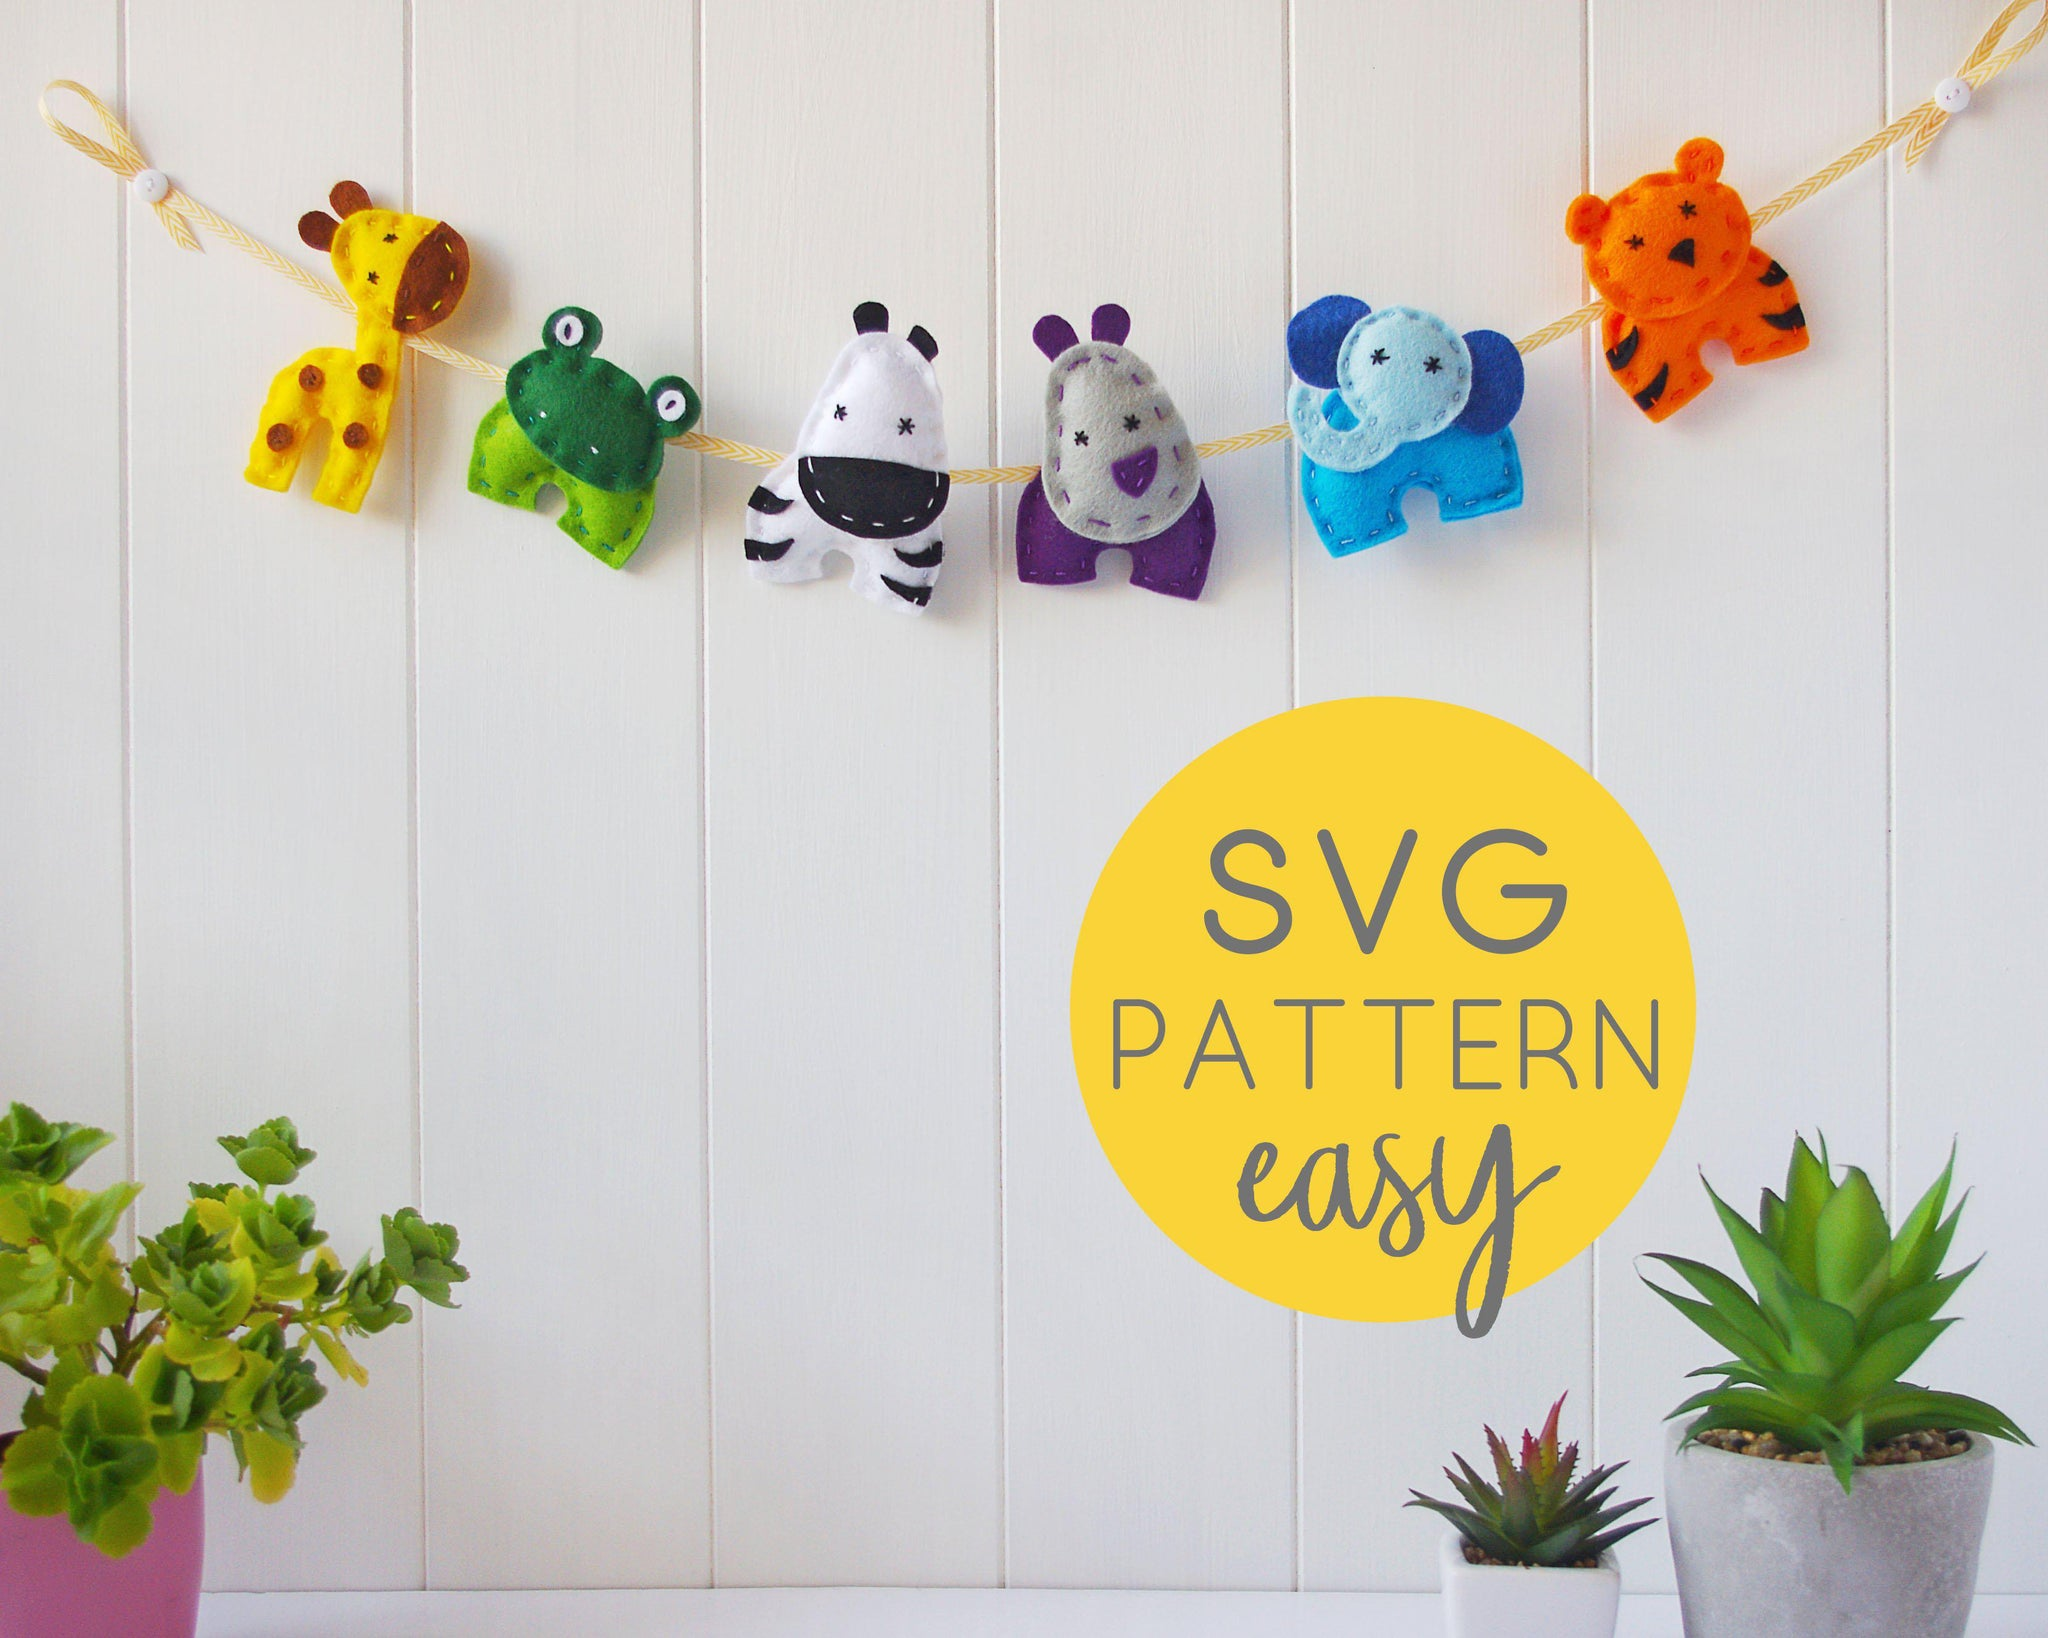 Felt Animal Garland SVG Pattern